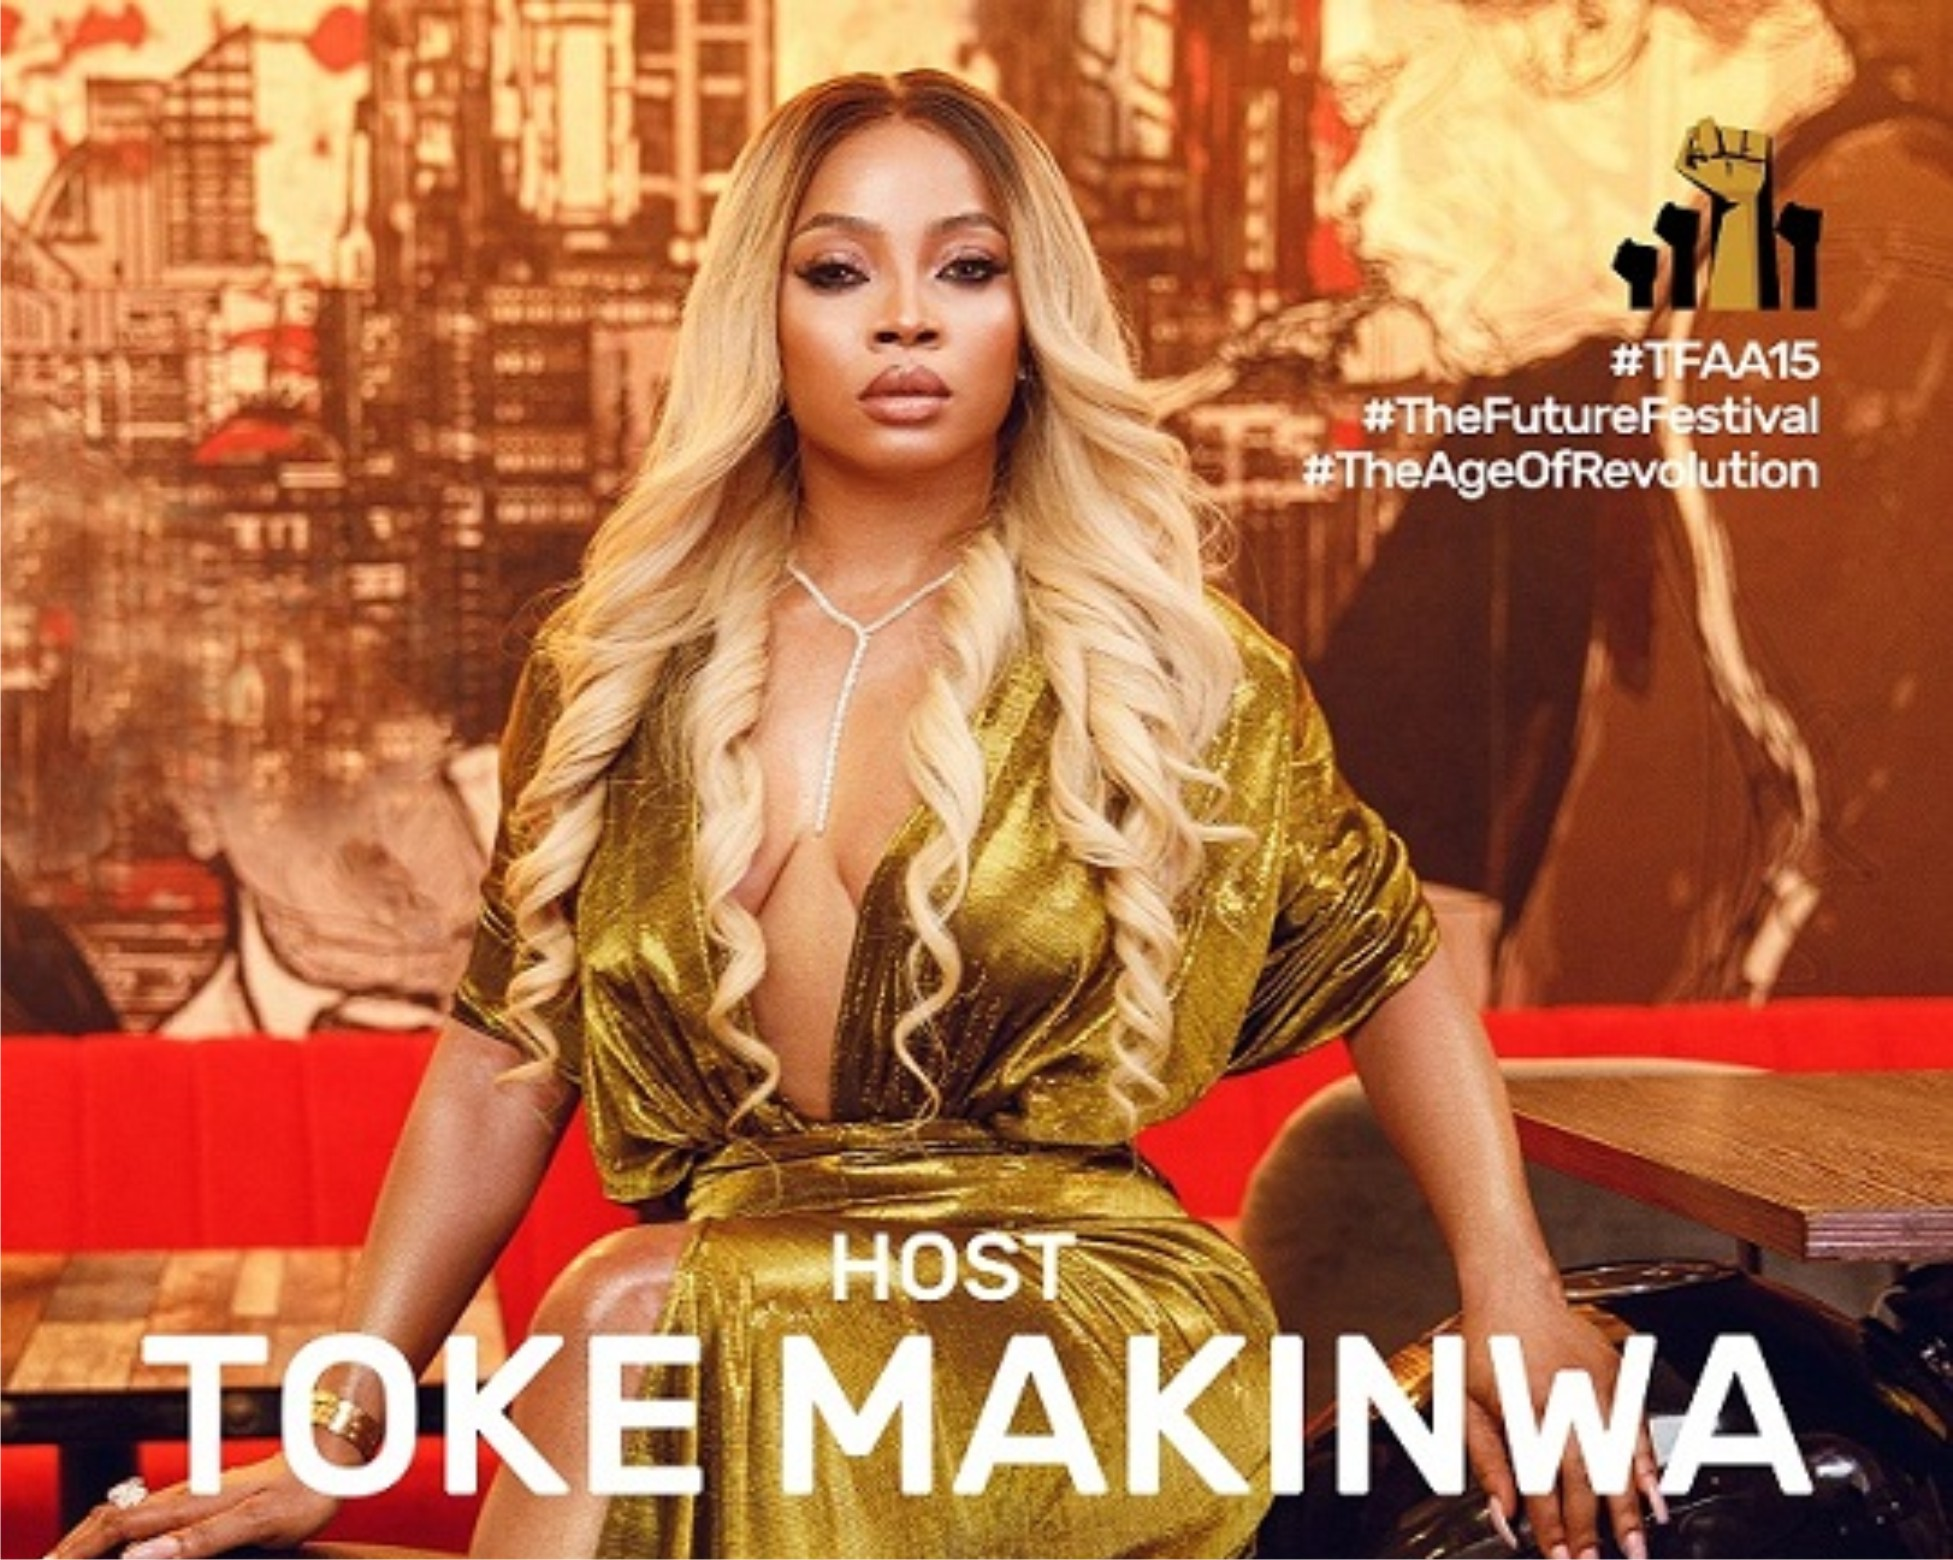 Fresh off #EndSARS protest, Toke Makinwa unveiled as host for The Future Awards Africa 2020 | Airing in partnership with Africa Magic, MTV Base, Pop Central and Cool FM